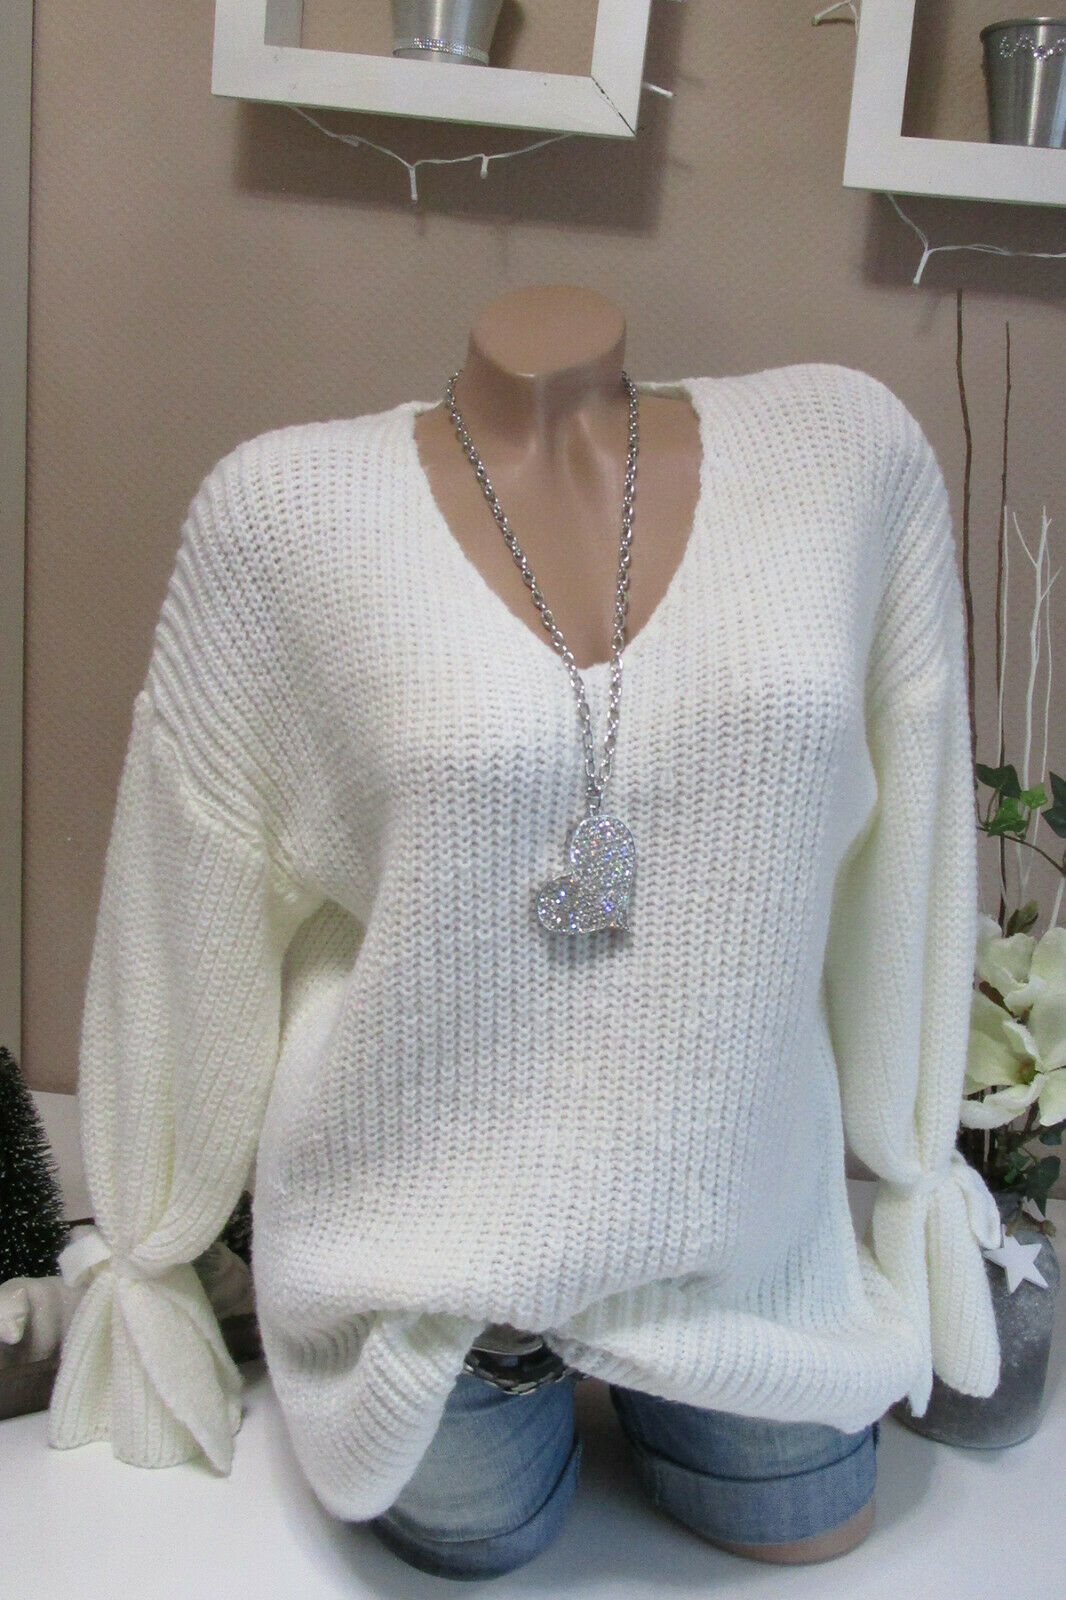 Warm Cuddle Knitted Jumper Chunky Jumper Vintage Oversize White Bow 36-40